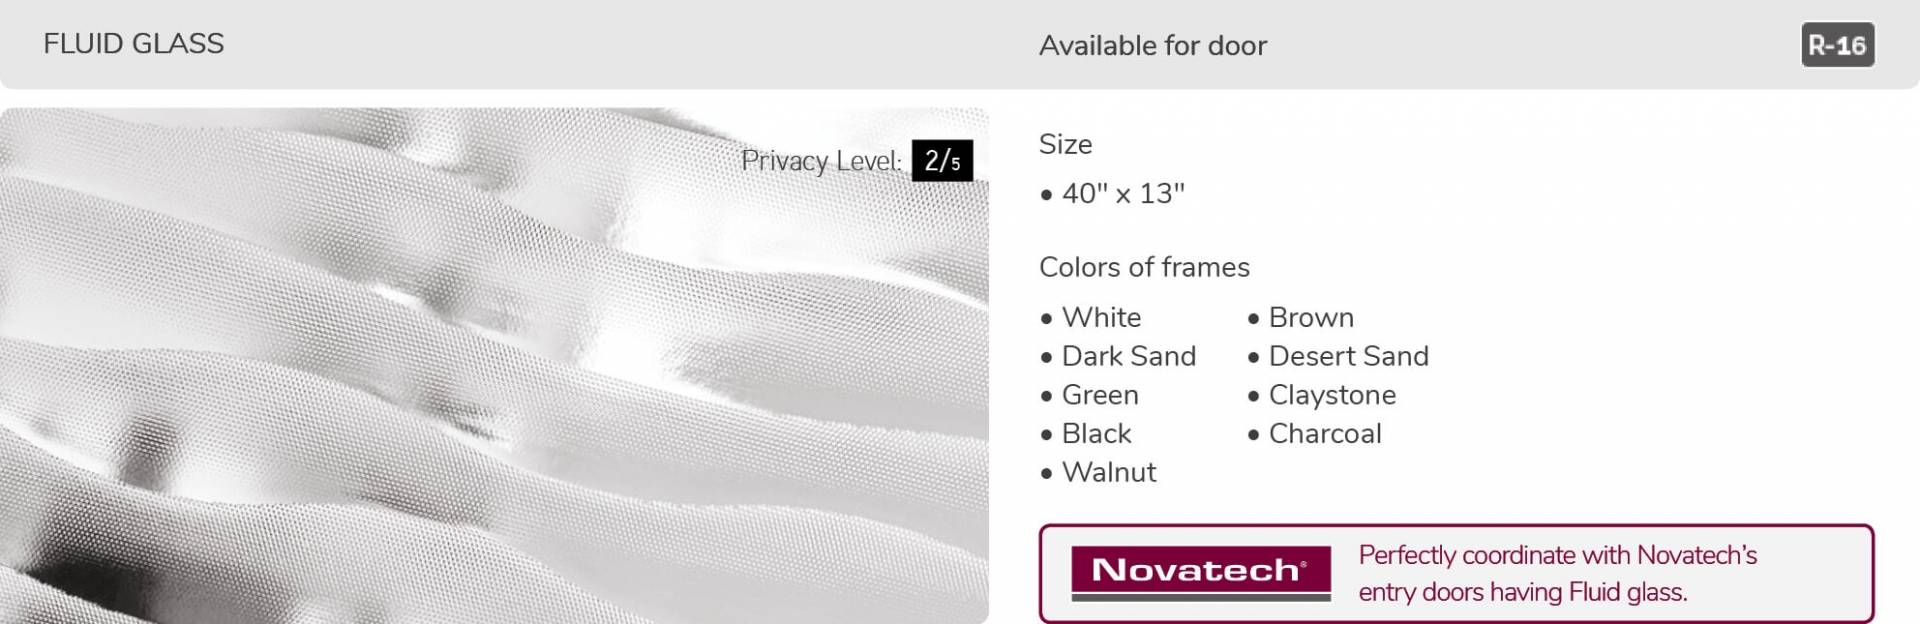 Fluid glass, 40' x 13', available for door R-16